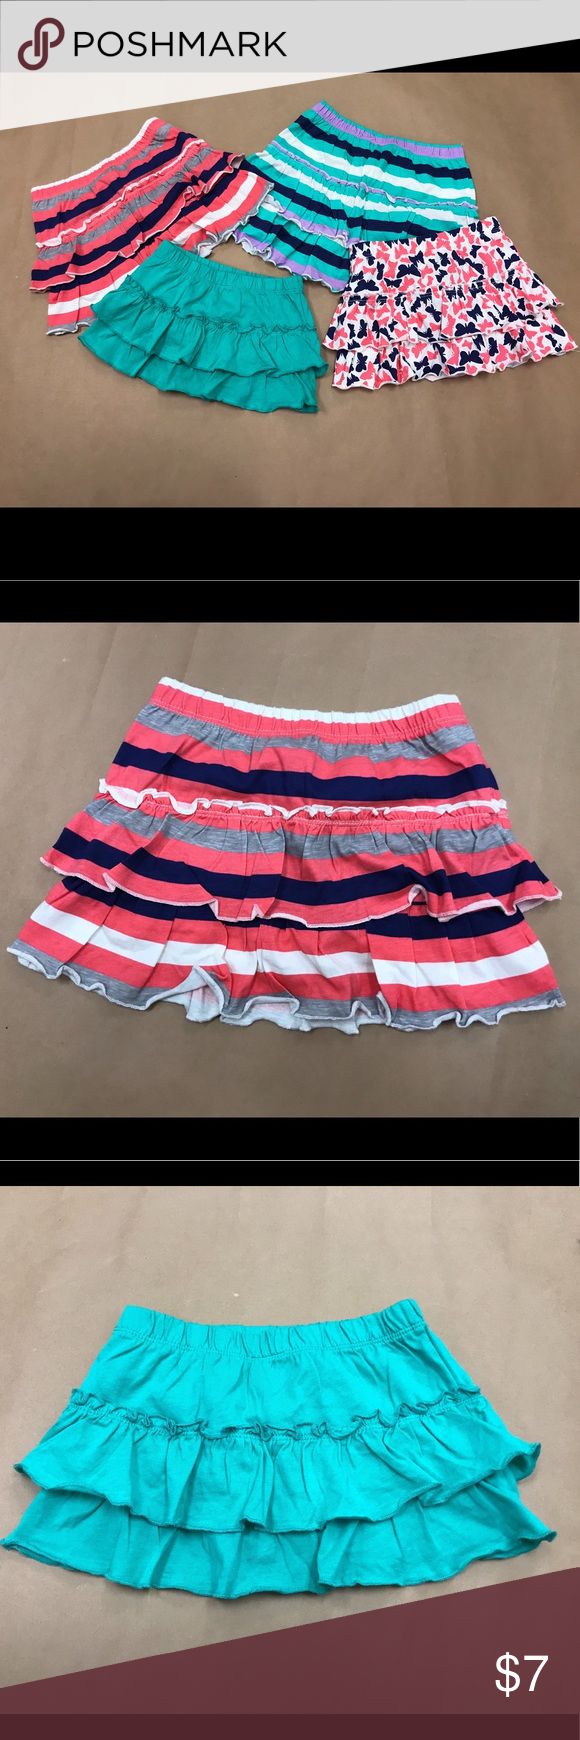 Girls mix and match skorts for or for boutique my posh